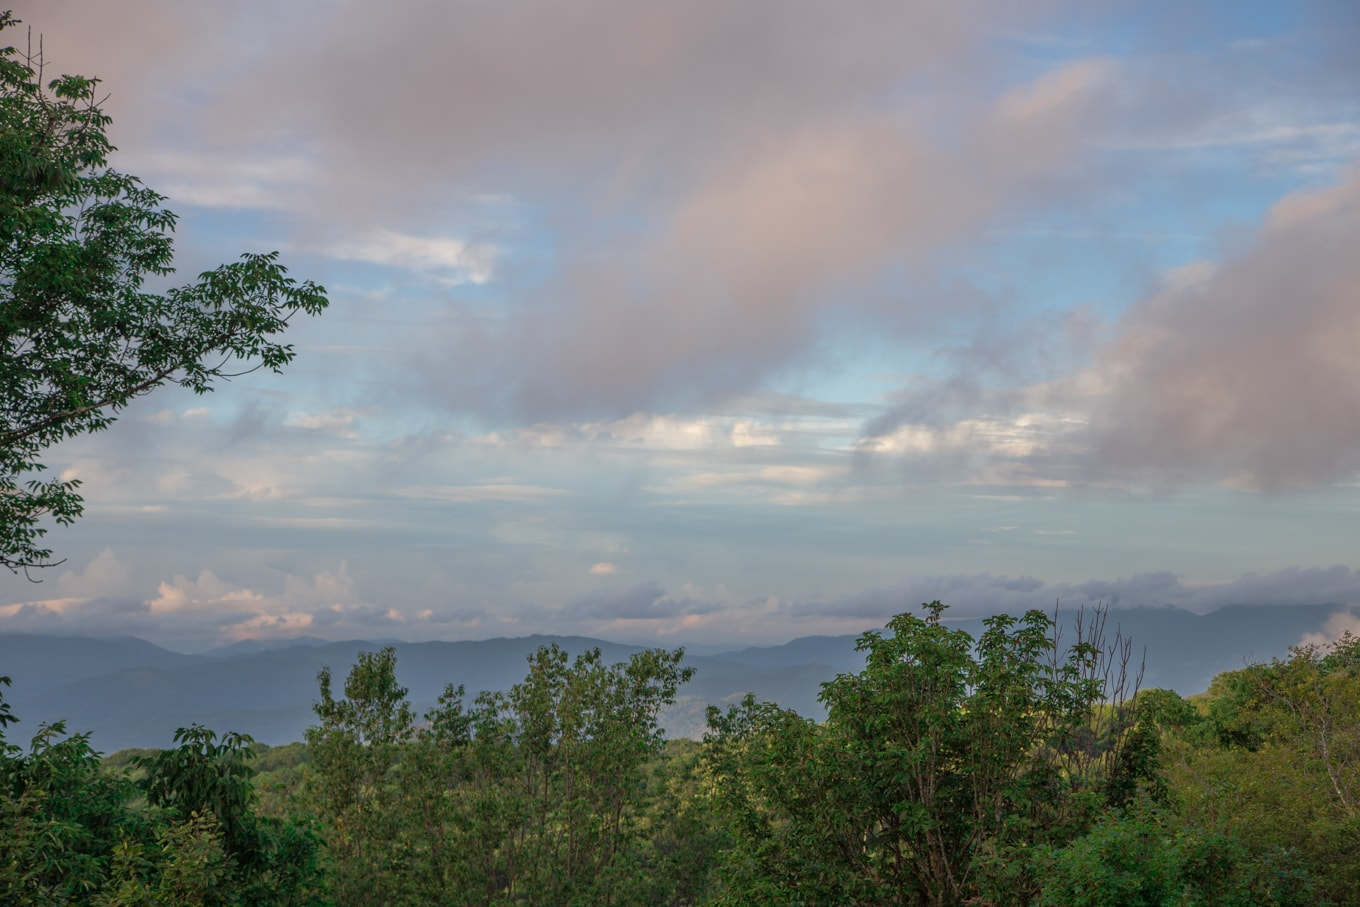 Panoramic shot of the North Carolina Mountains with green trees and a colorful, stormy sky.